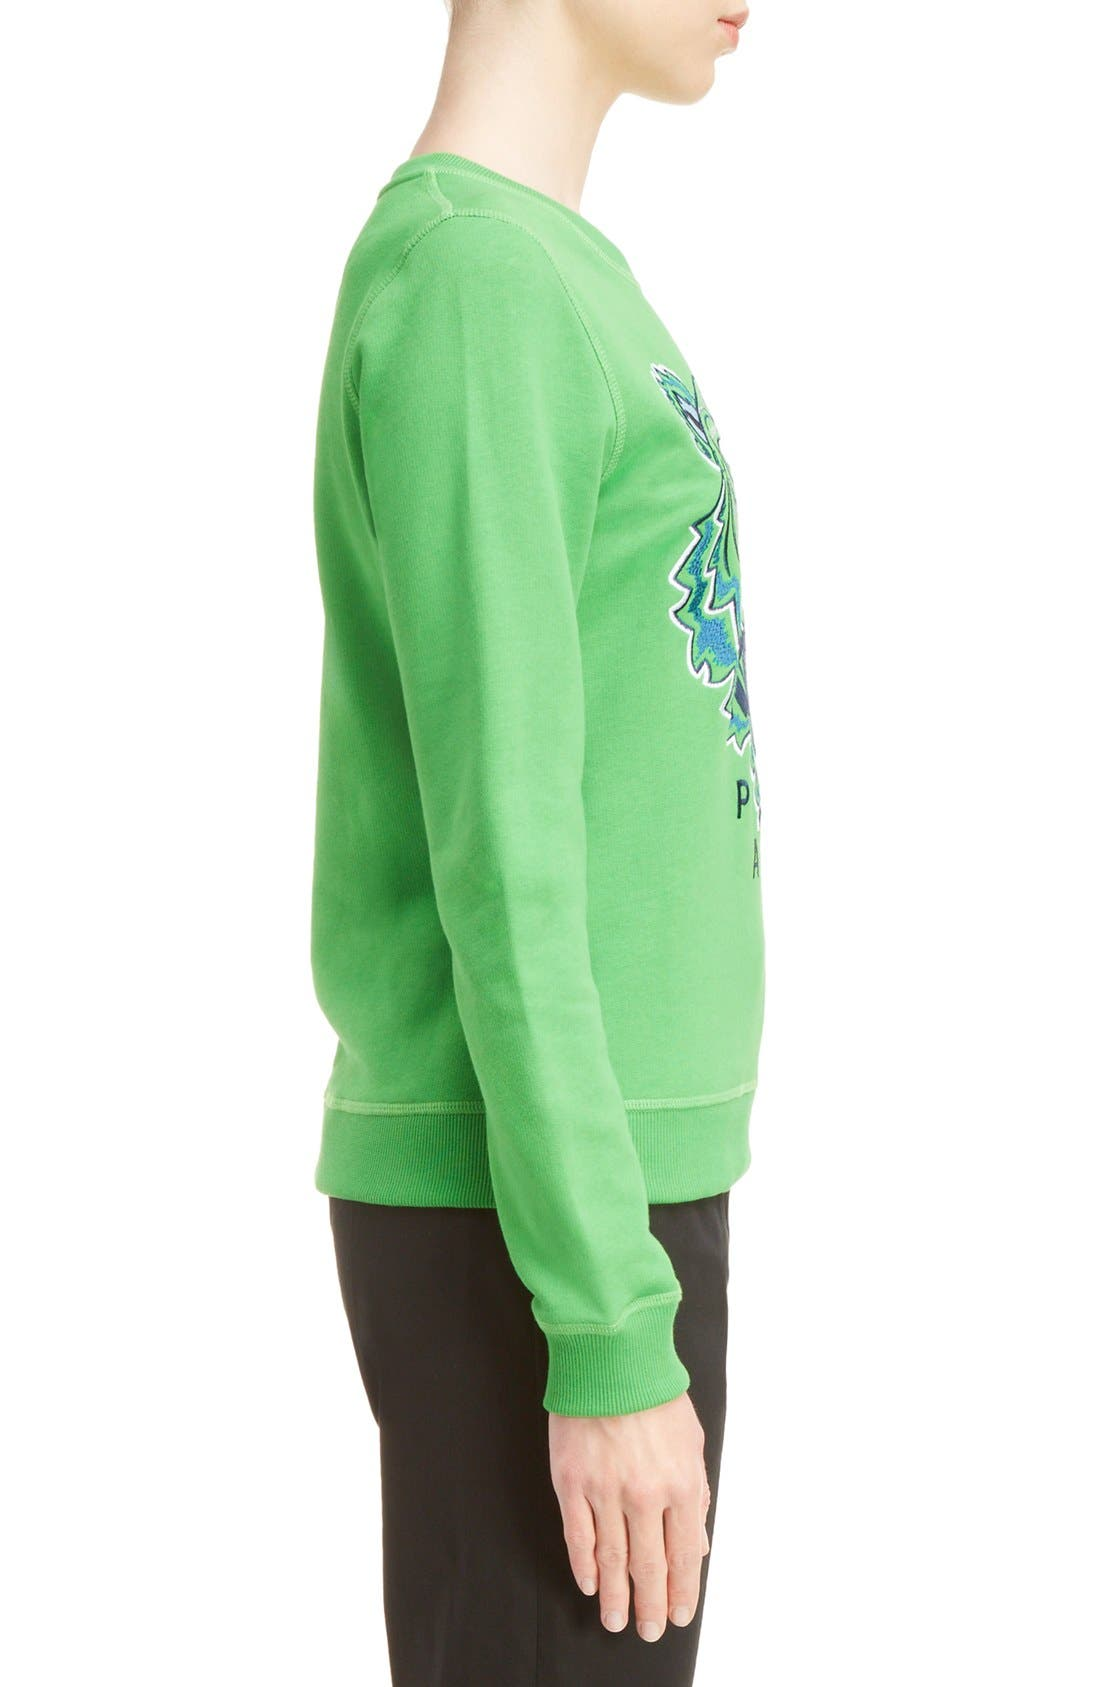 Embroidered Tiger Cotton Sweatshirt,                             Alternate thumbnail 3, color,                             311